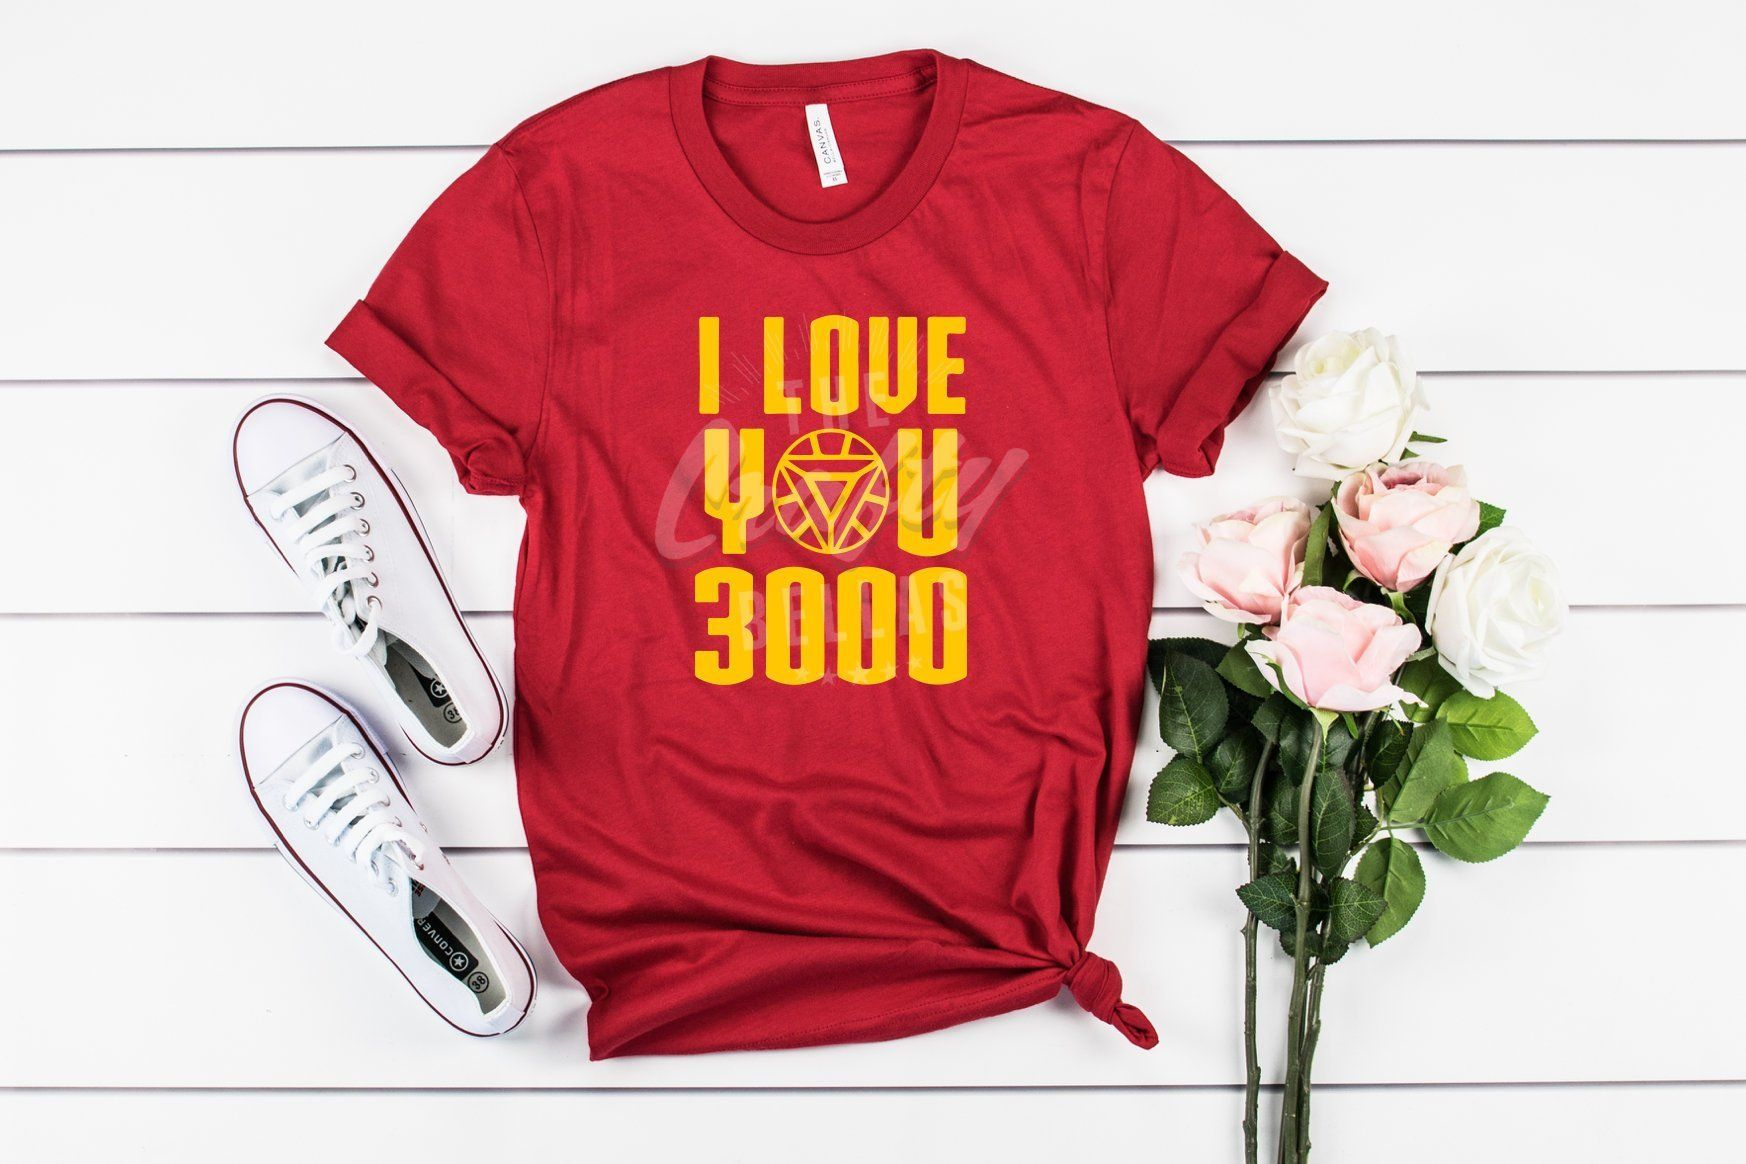 I Love You 3000 All Glitter Iron Man Avengers Disney Shirt For Women And Girls By Thecraftybellas Iron Man Shirt Disney Shirts For Men Womens Disney Shirts